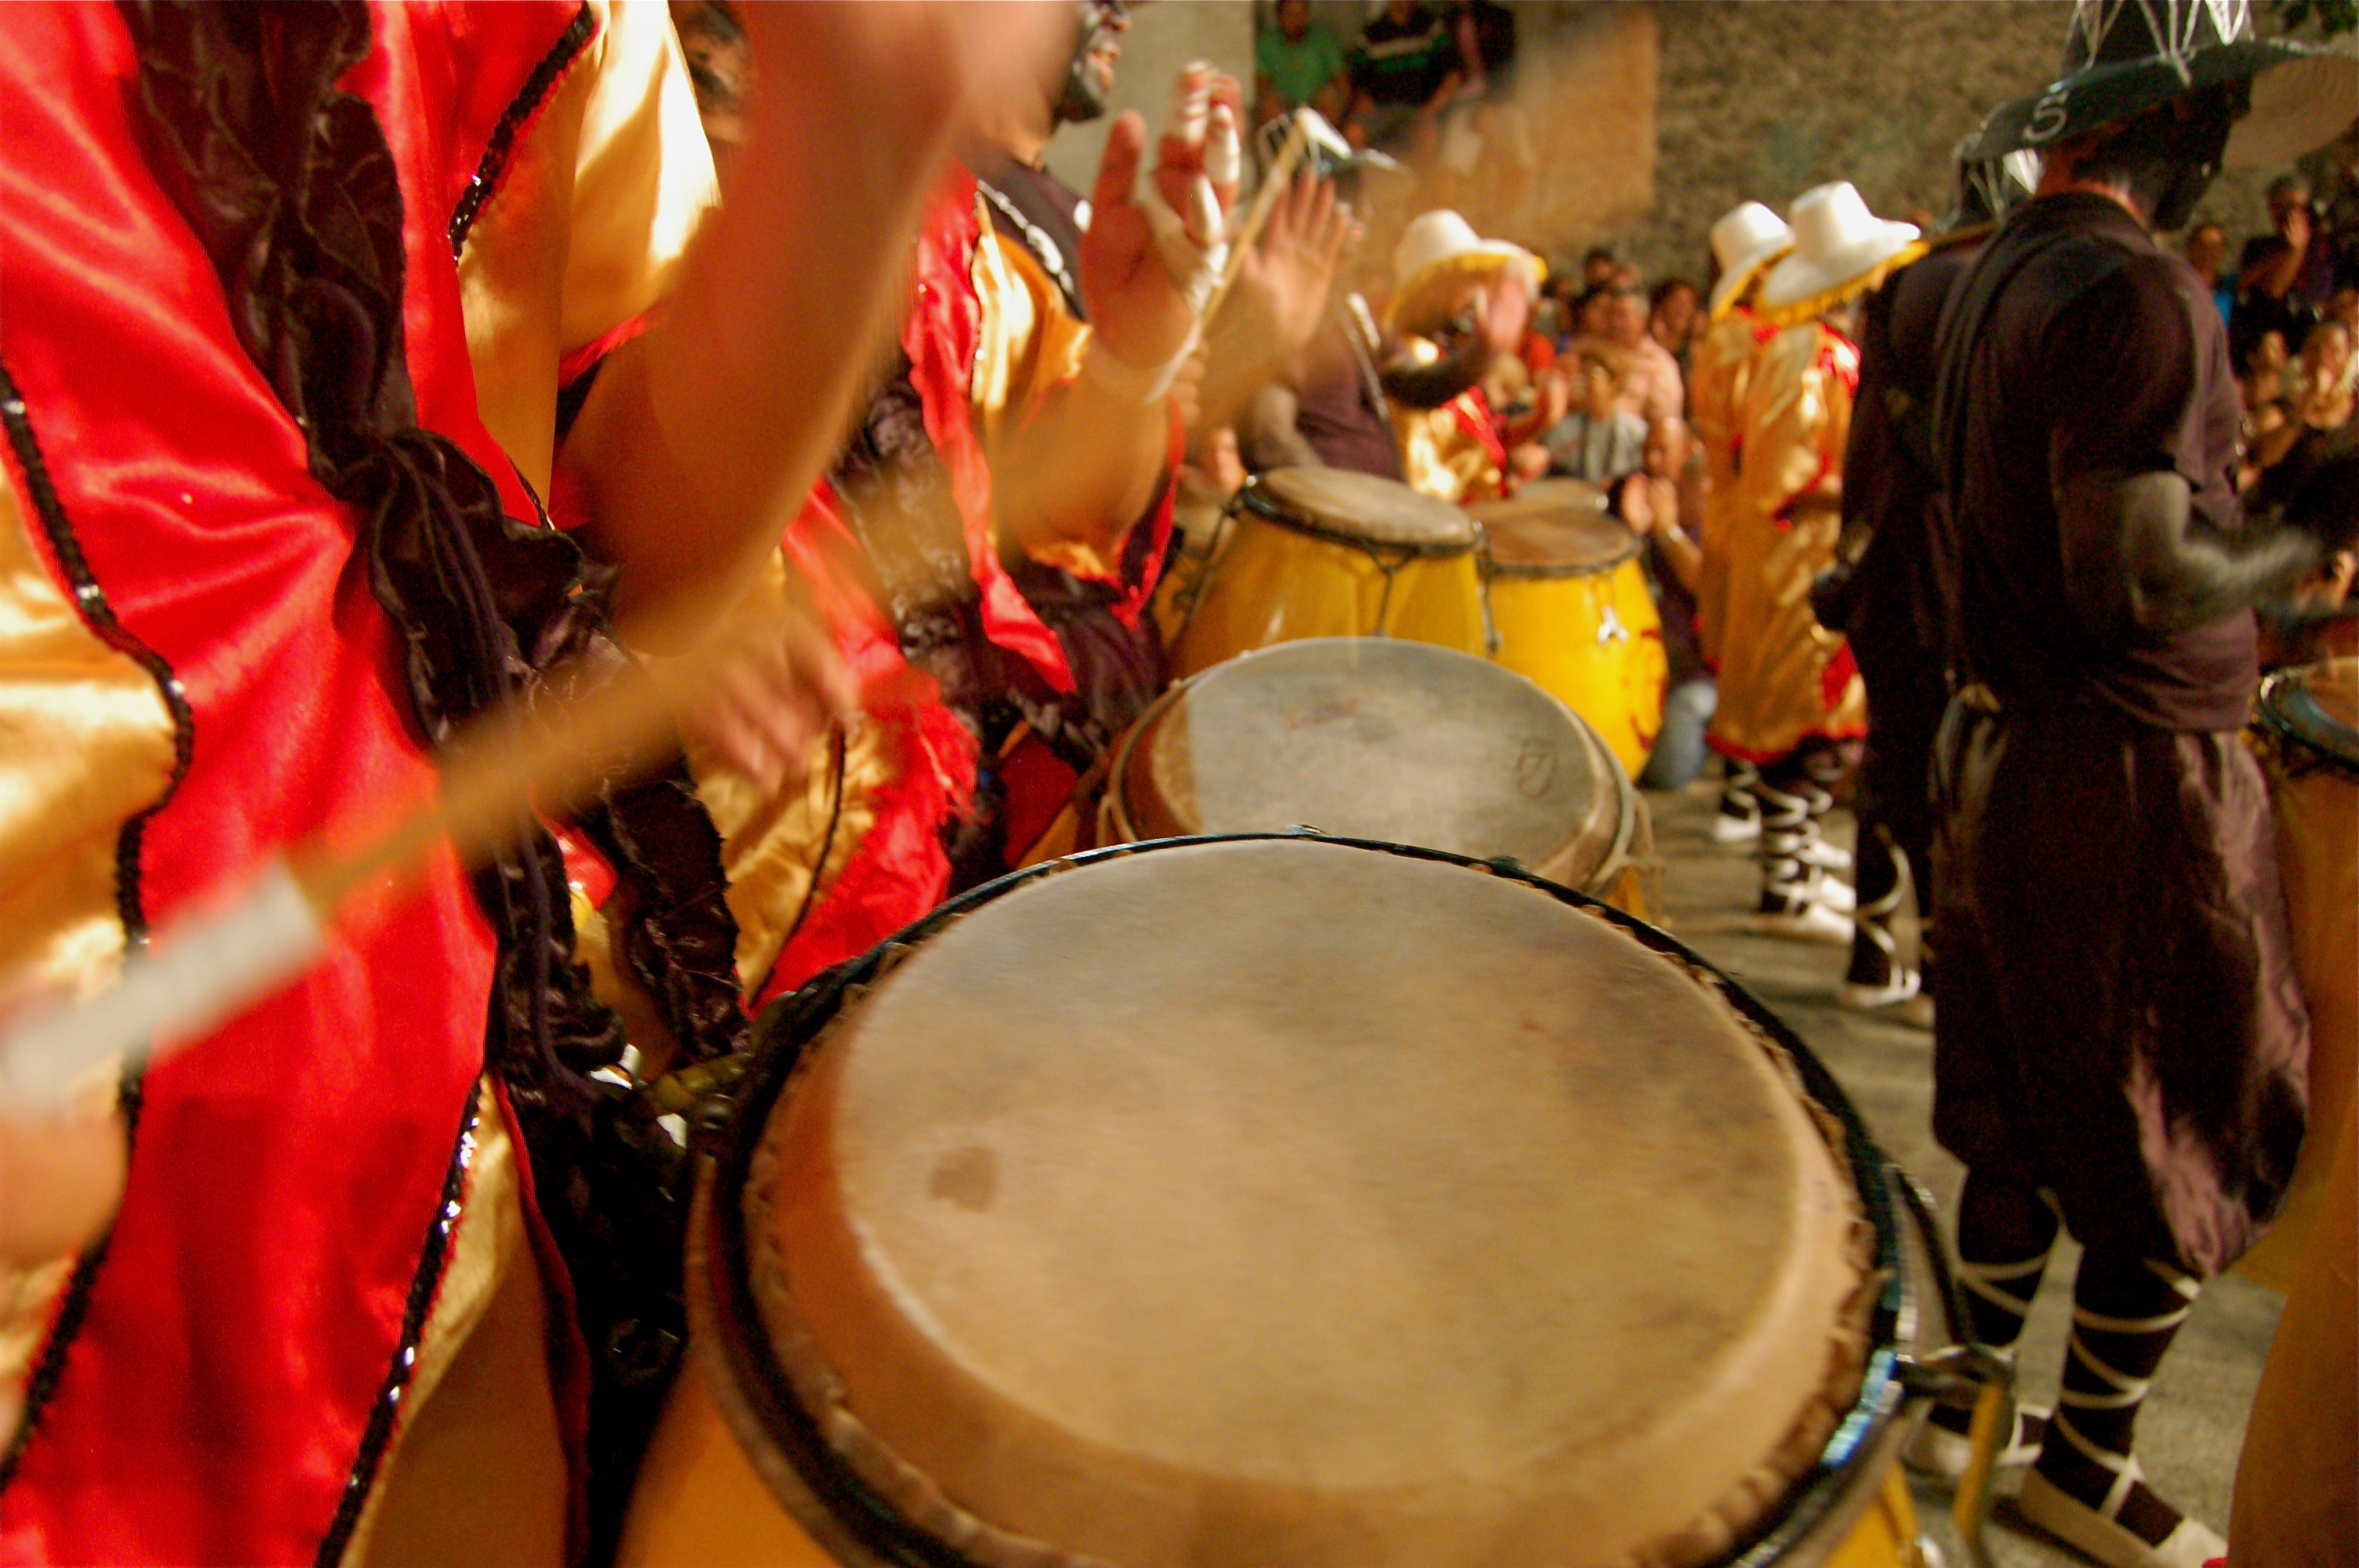 Bongo drums in Bahia Brazil Candomble ceremonies strong African identity